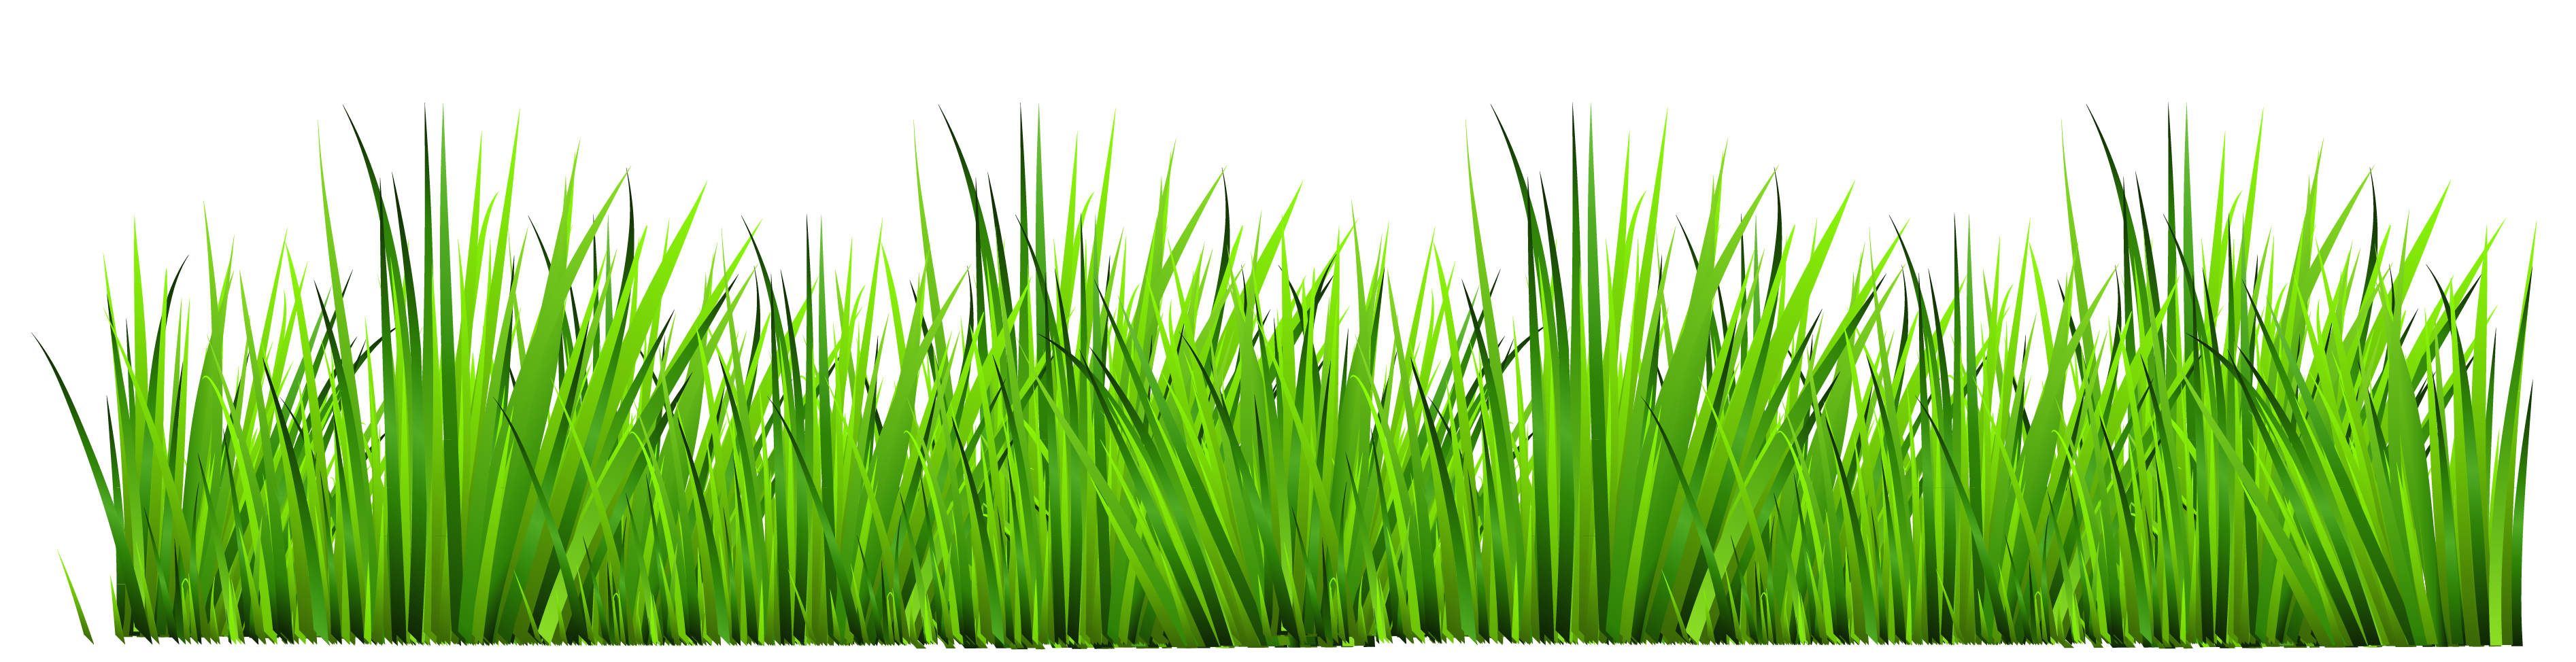 Grass images clipart graphic freeuse library Pin by Ghada Salah on Craft | Grass decor, School door decorations ... graphic freeuse library